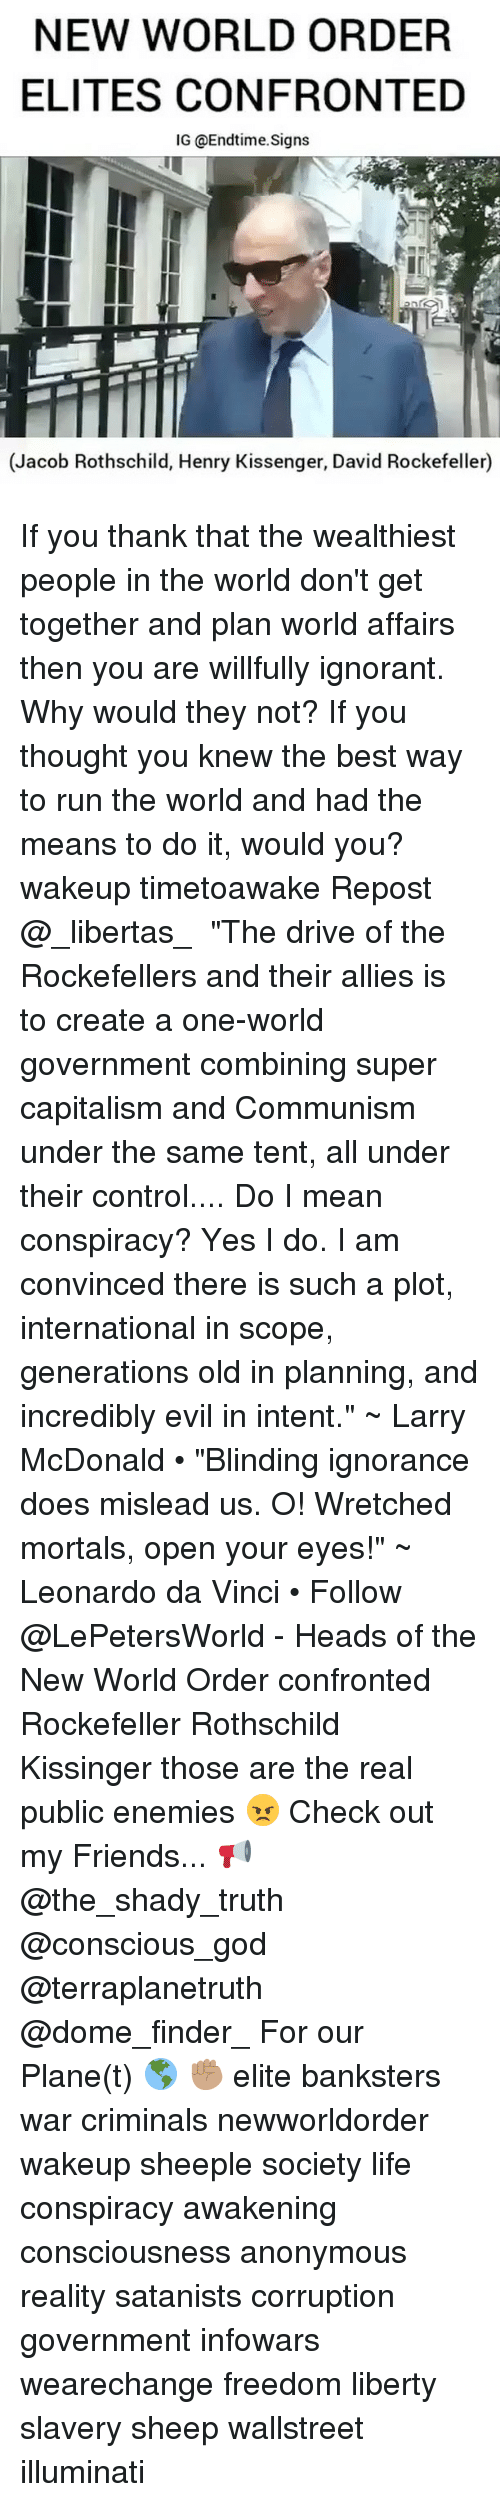 """Willed Ignorance: NEW WORLD ORDER  ELITES CONFRONTED  IG @Endtime signs  (Jacob Rothschild, Henry Kissenger, David Rockefeller) If you thank that the wealthiest people in the world don't get together and plan world affairs then you are willfully ignorant. Why would they not? If you thought you knew the best way to run the world and had the means to do it, would you? wakeup timetoawake Repost @_libertas_ ・・・ """"The drive of the Rockefellers and their allies is to create a one-world government combining super capitalism and Communism under the same tent, all under their control.... Do I mean conspiracy? Yes I do. I am convinced there is such a plot, international in scope, generations old in planning, and incredibly evil in intent."""" ~ Larry McDonald • """"Blinding ignorance does mislead us. O! Wretched mortals, open your eyes!"""" ~ Leonardo da Vinci • Follow @LePetersWorld - Heads of the New World Order confronted Rockefeller Rothschild Kissinger those are the real public enemies 😠 Check out my Friends... 📢 @the_shady_truth @conscious_god @terraplanetruth @dome_finder_ For our Plane(t) 🌎 ✊🏽 elite banksters war criminals newworldorder wakeup sheeple society life conspiracy awakening consciousness anonymous reality satanists corruption government infowars wearechange freedom liberty slavery sheep wallstreet illuminati"""